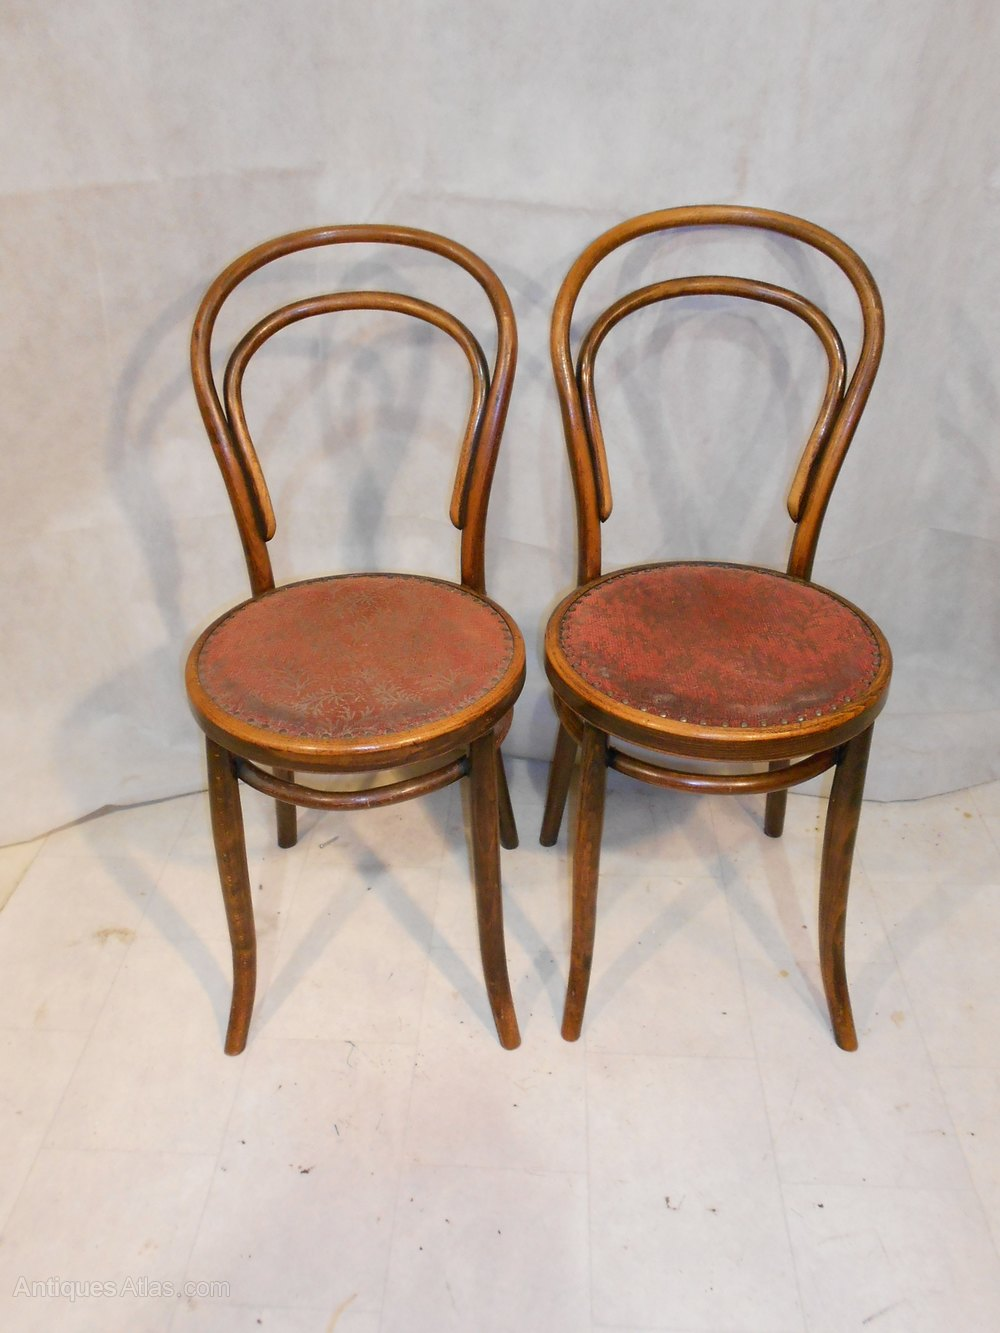 ... bentwood chairs Pair of Antique Chairs ... - Antique Classic Design Icon No 14 Bentwood Chairs - Antiques Atlas